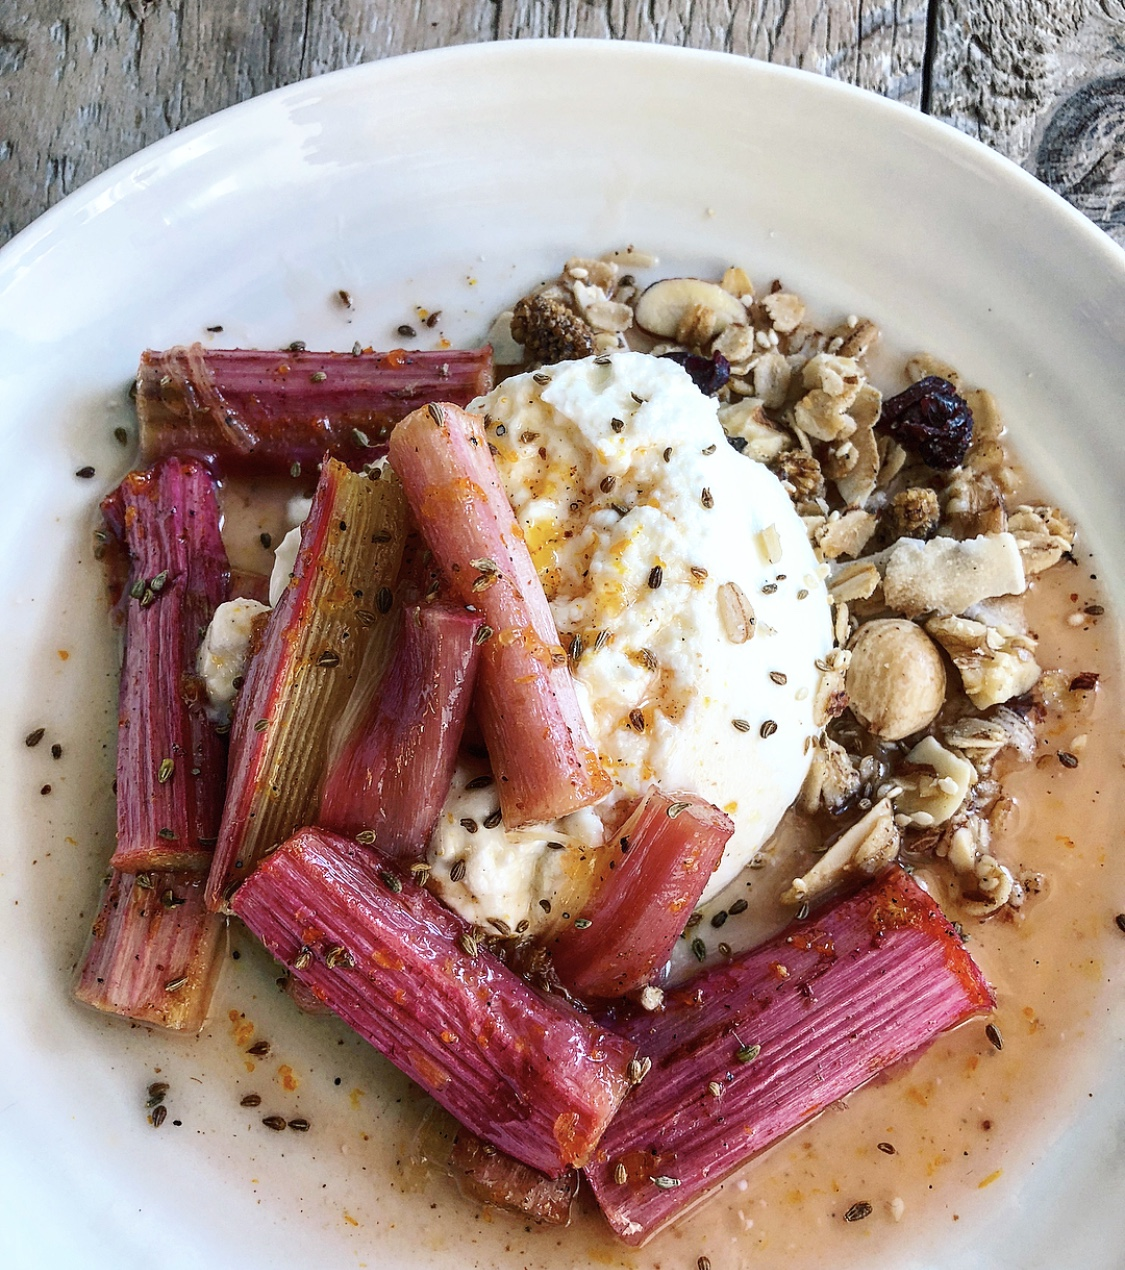 Roasted Rhubarb and Skyr